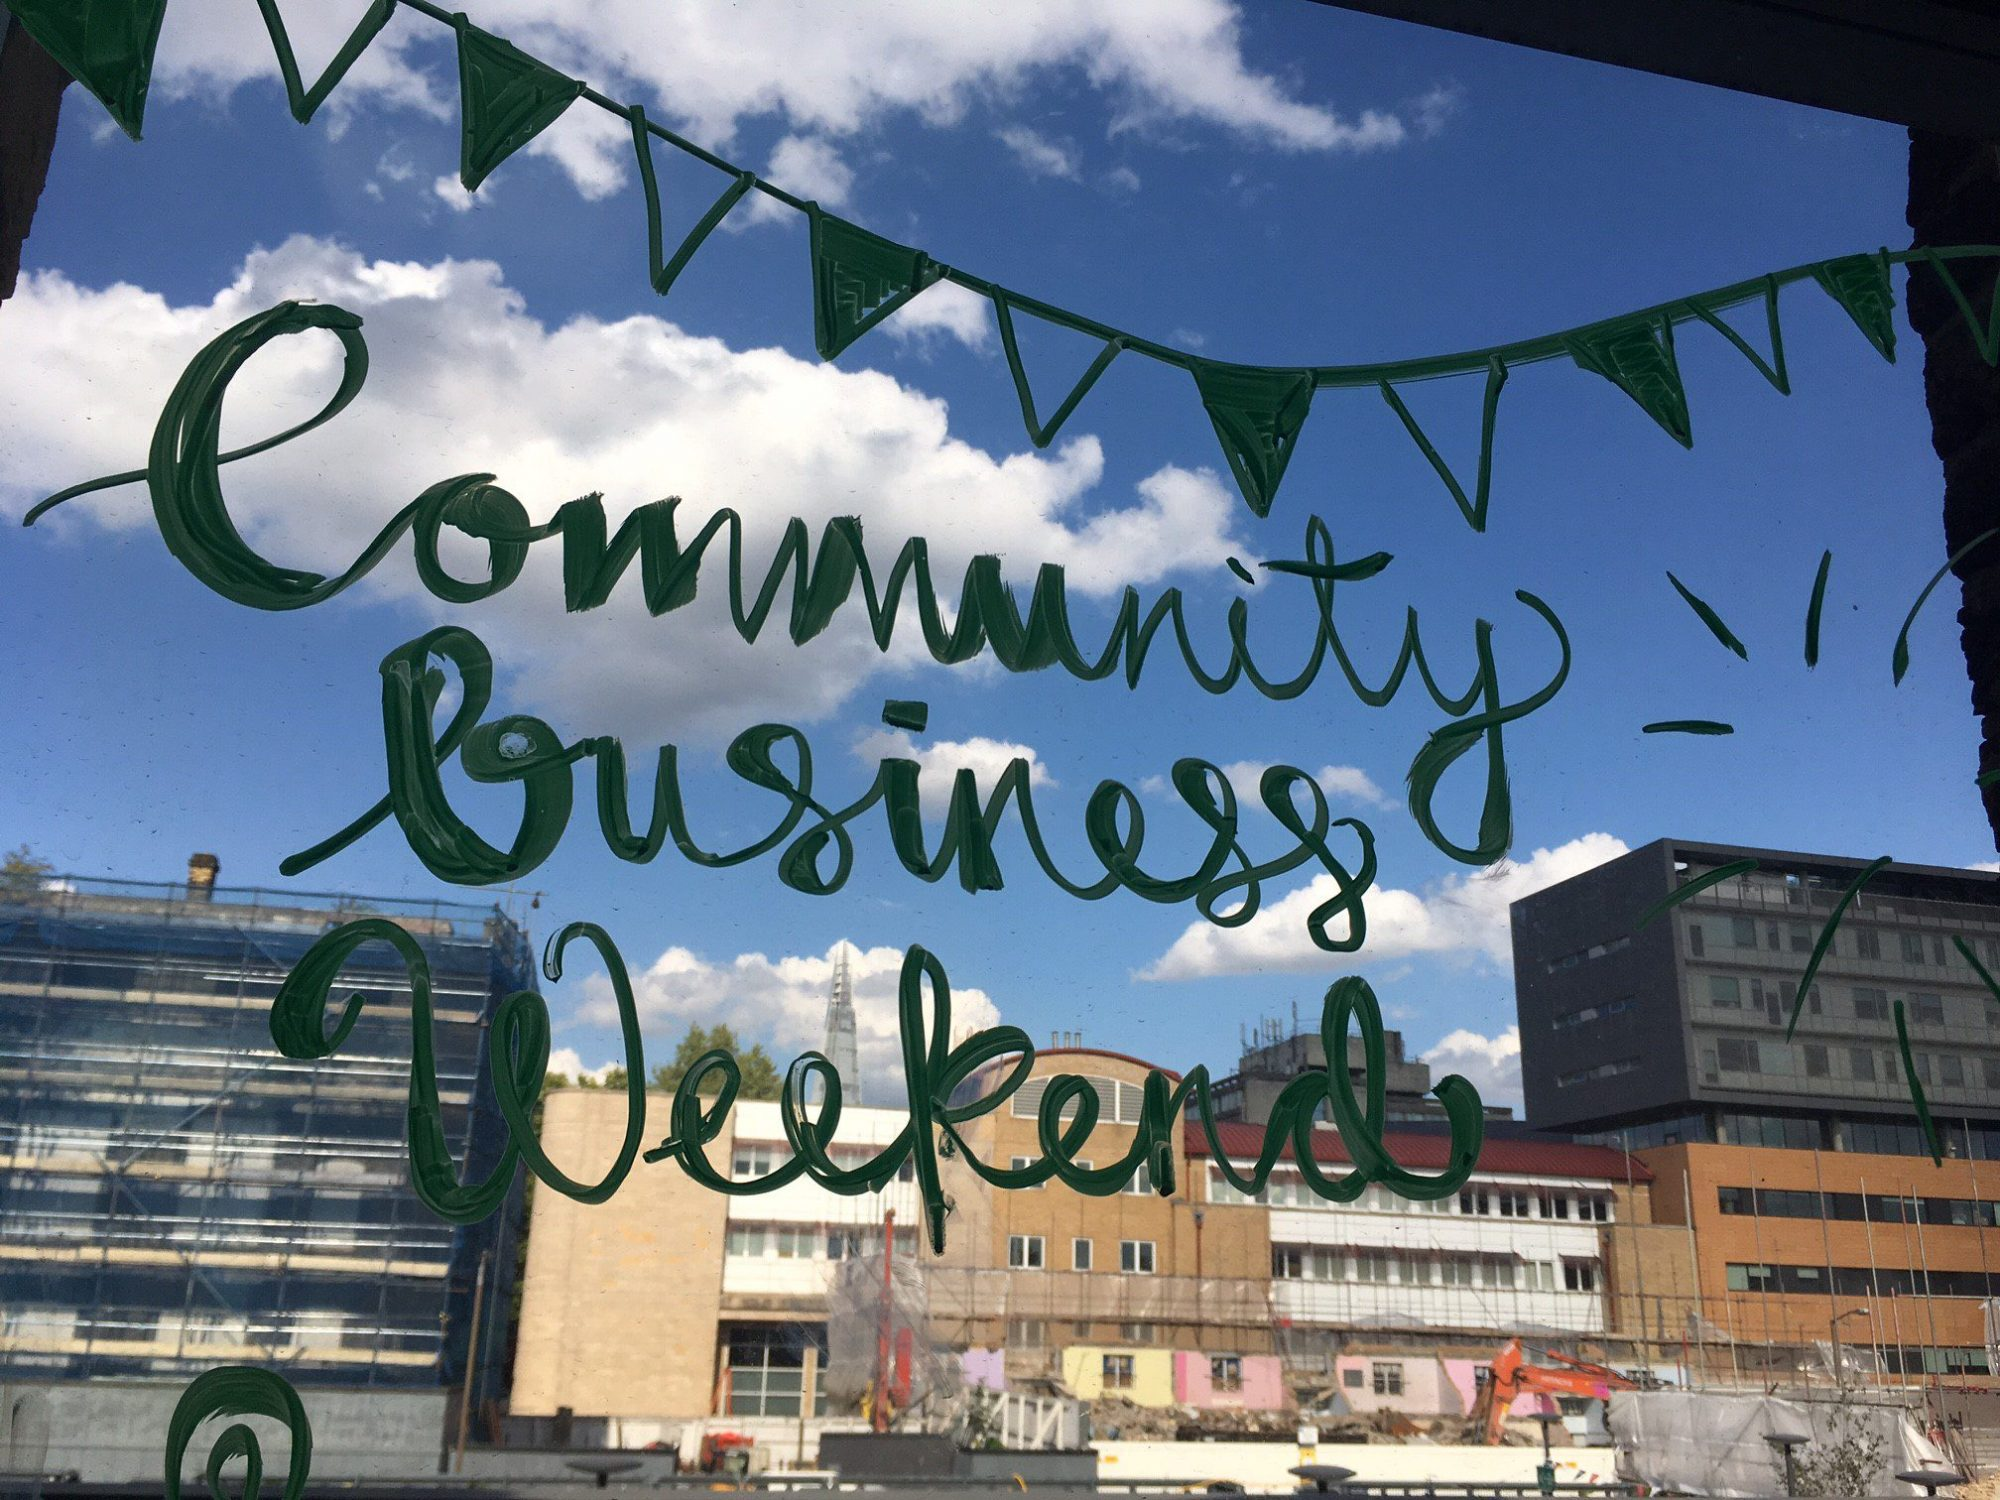 Community Business Weekend returns to champion the power of local people